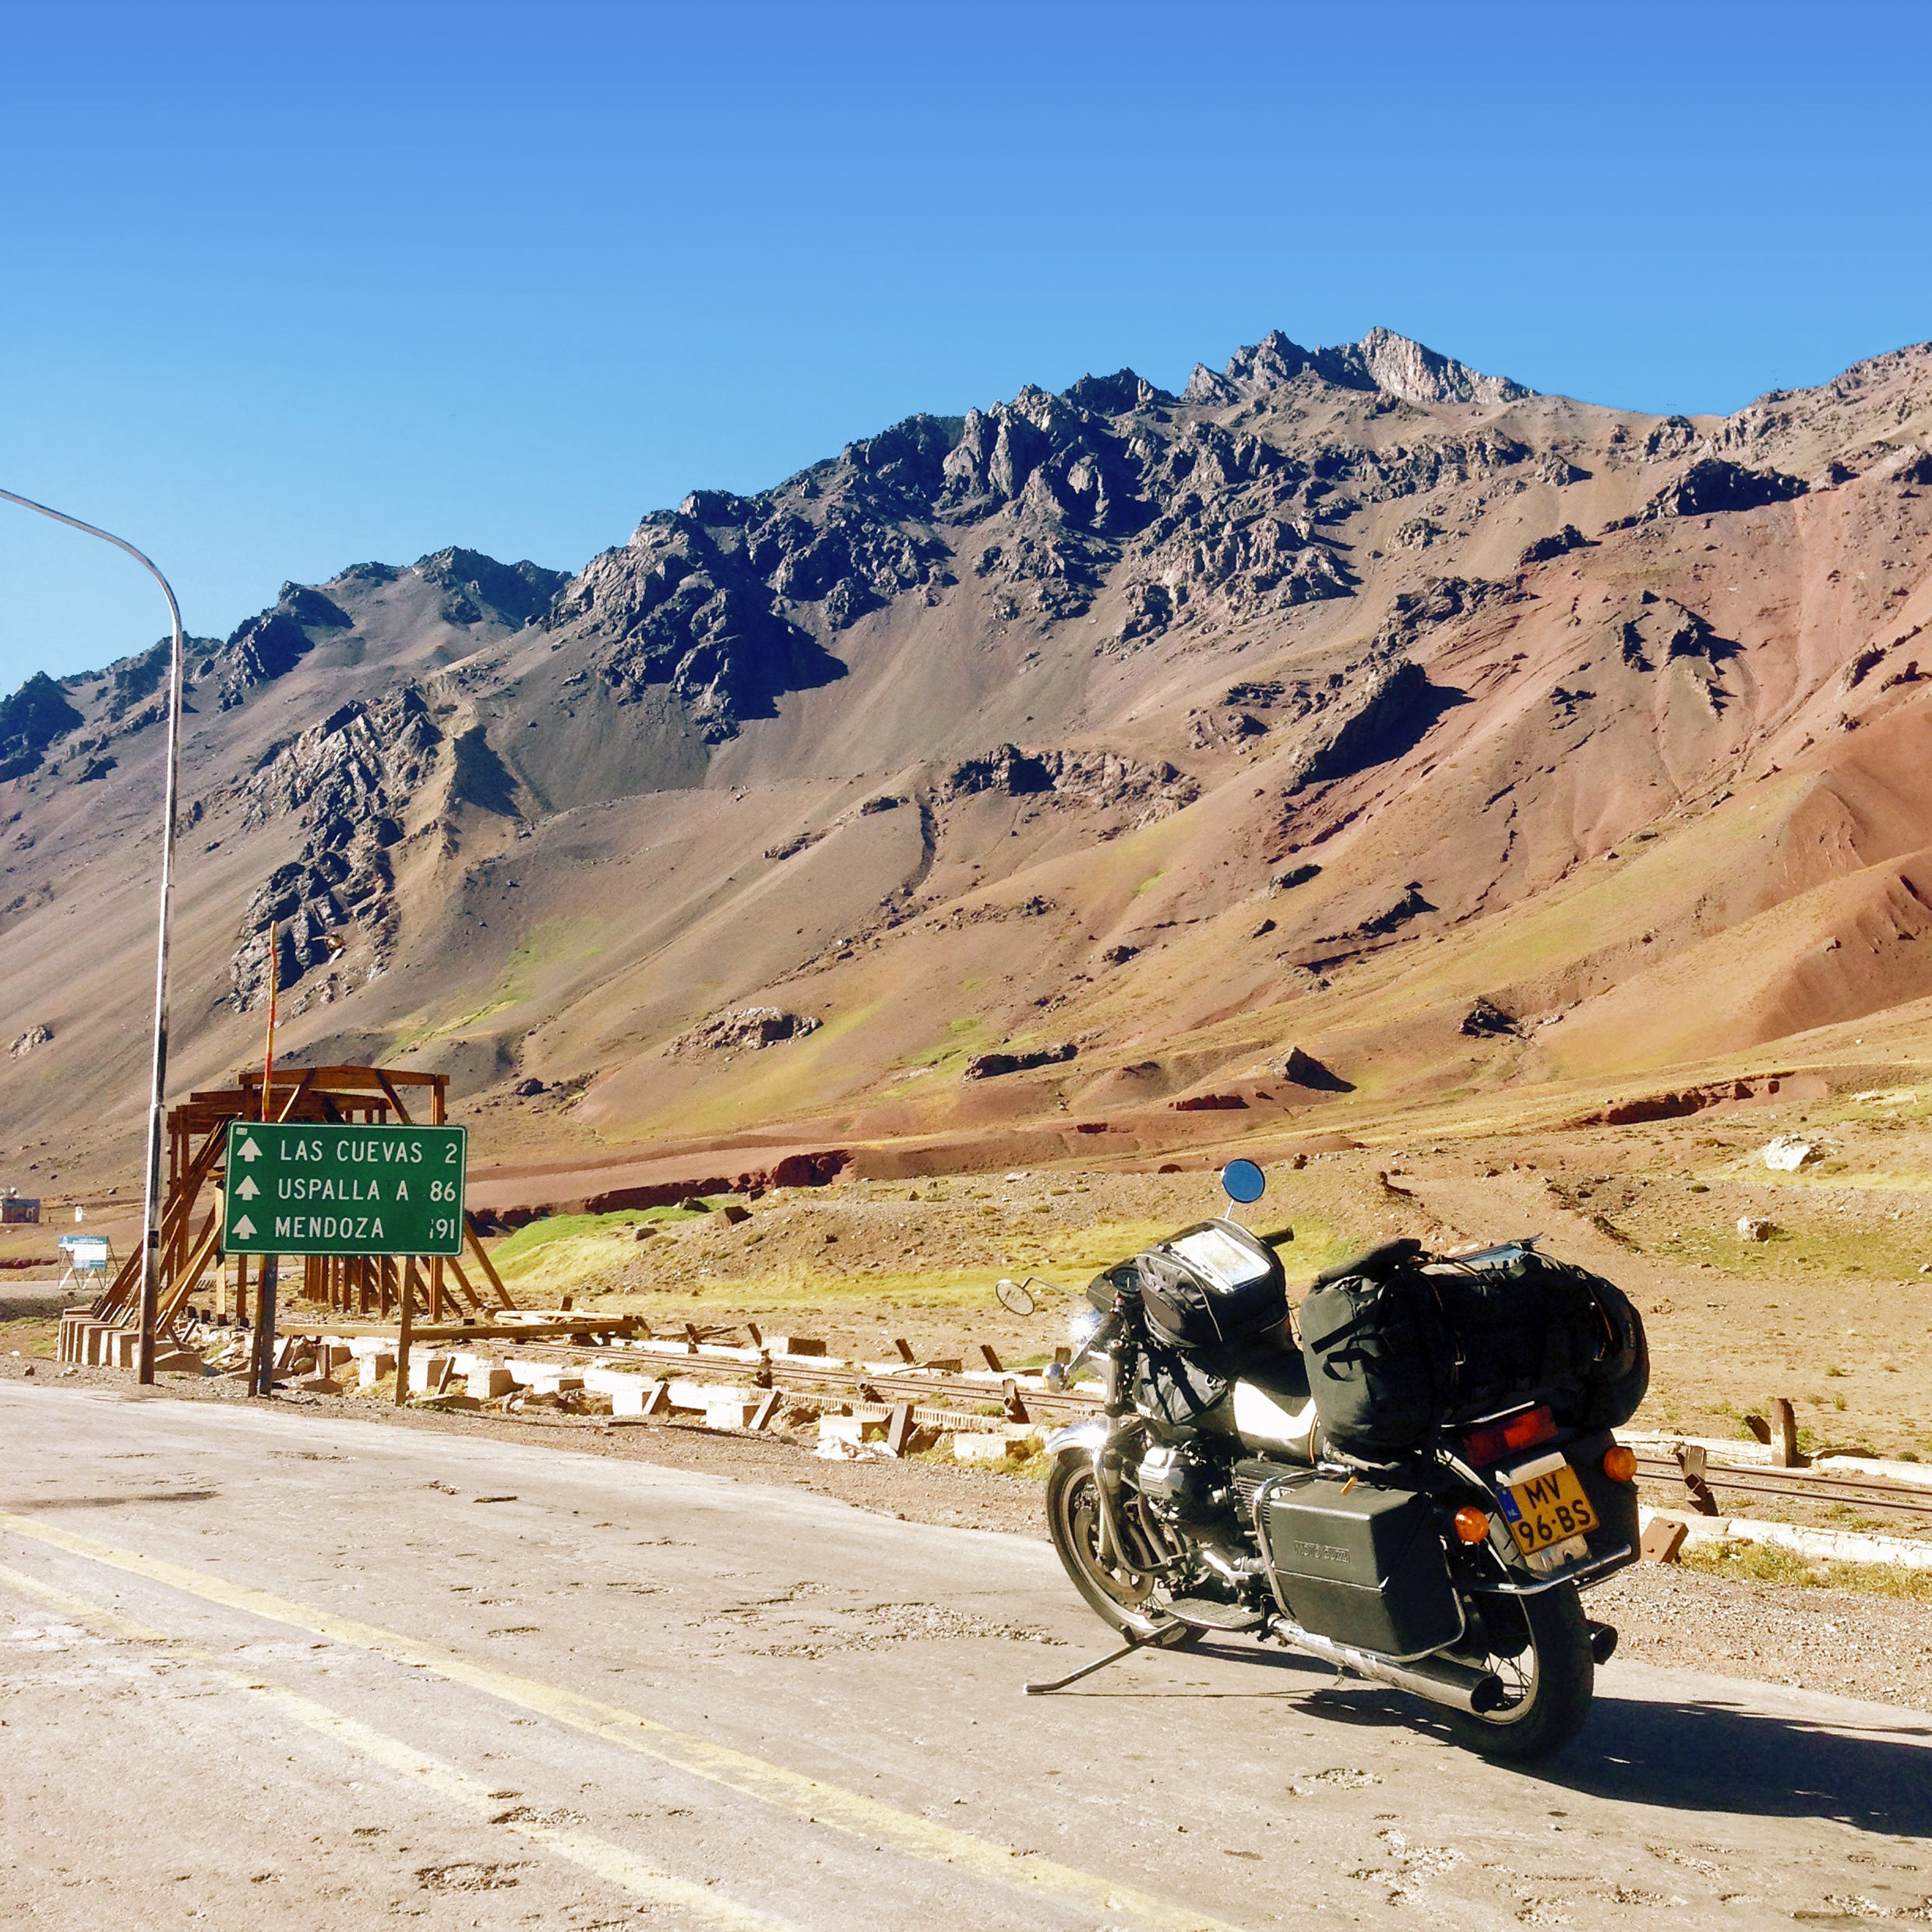 Border crossing between Chile and Argentina